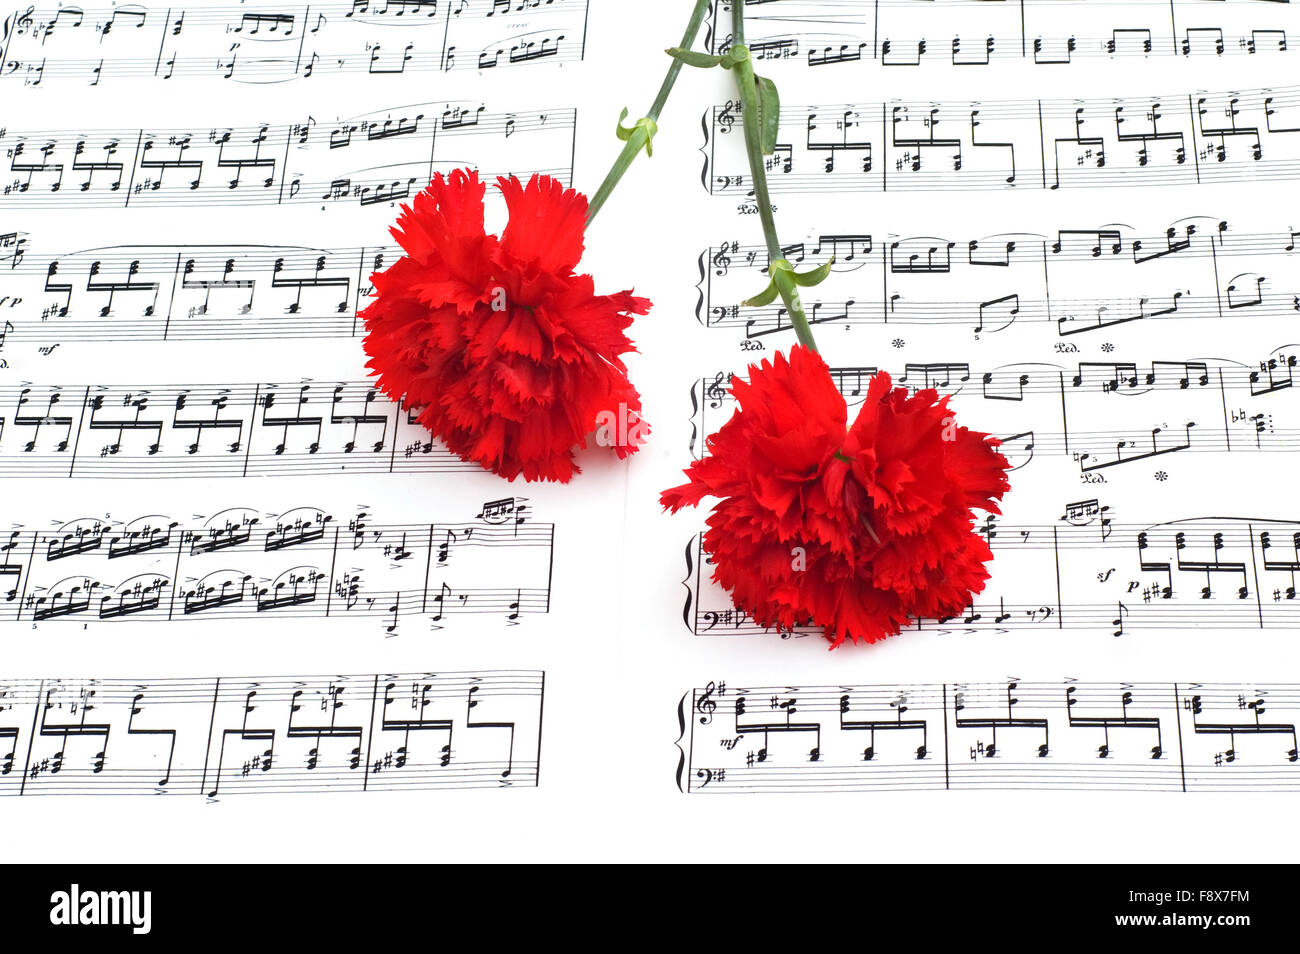 Red carnation flower on musical notes page stock photo 91545768 alamy red carnation flower on musical notes page ccuart Images